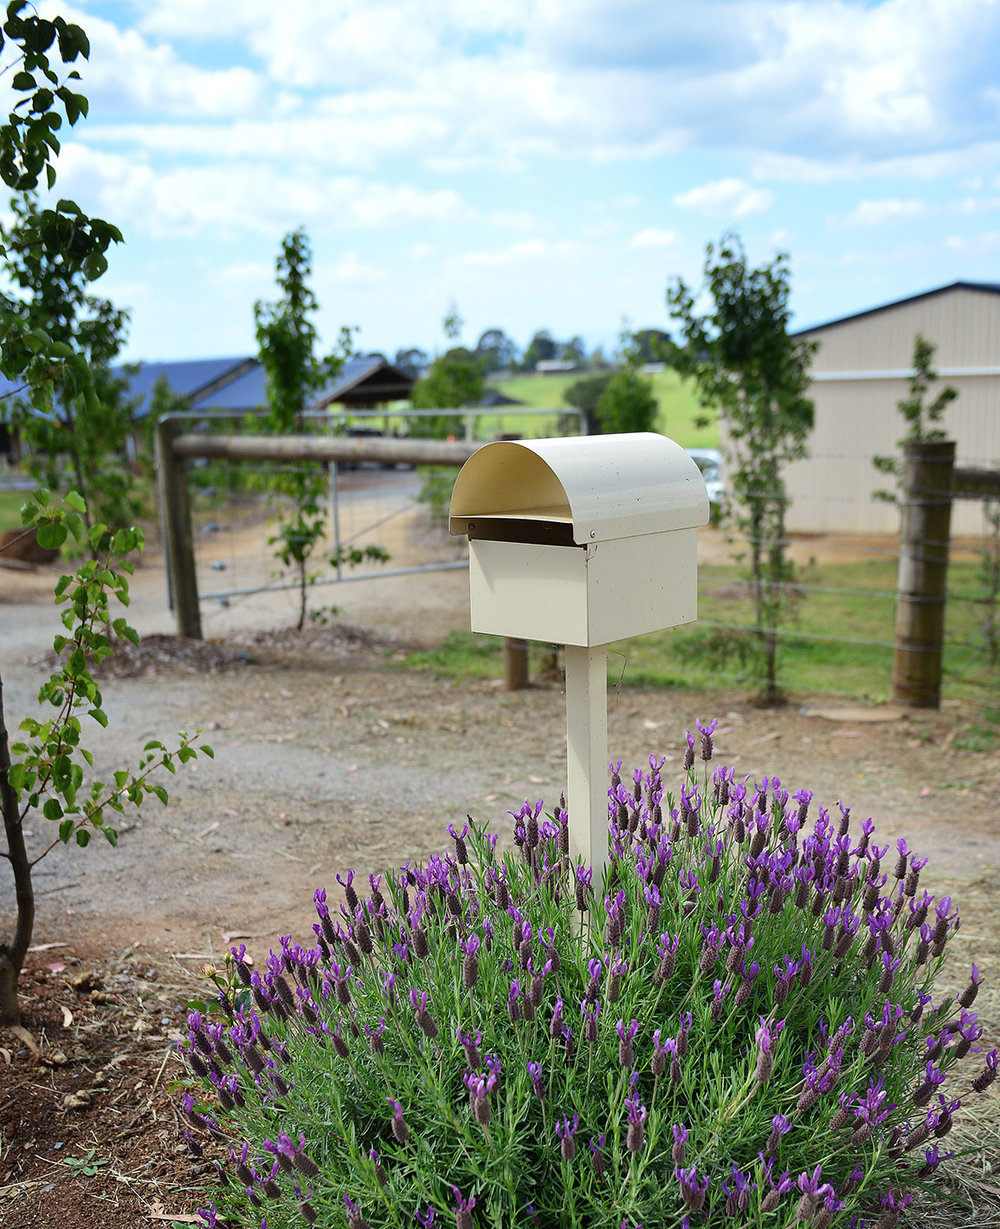 I couldn't resist dressing up the letterbox with lavender